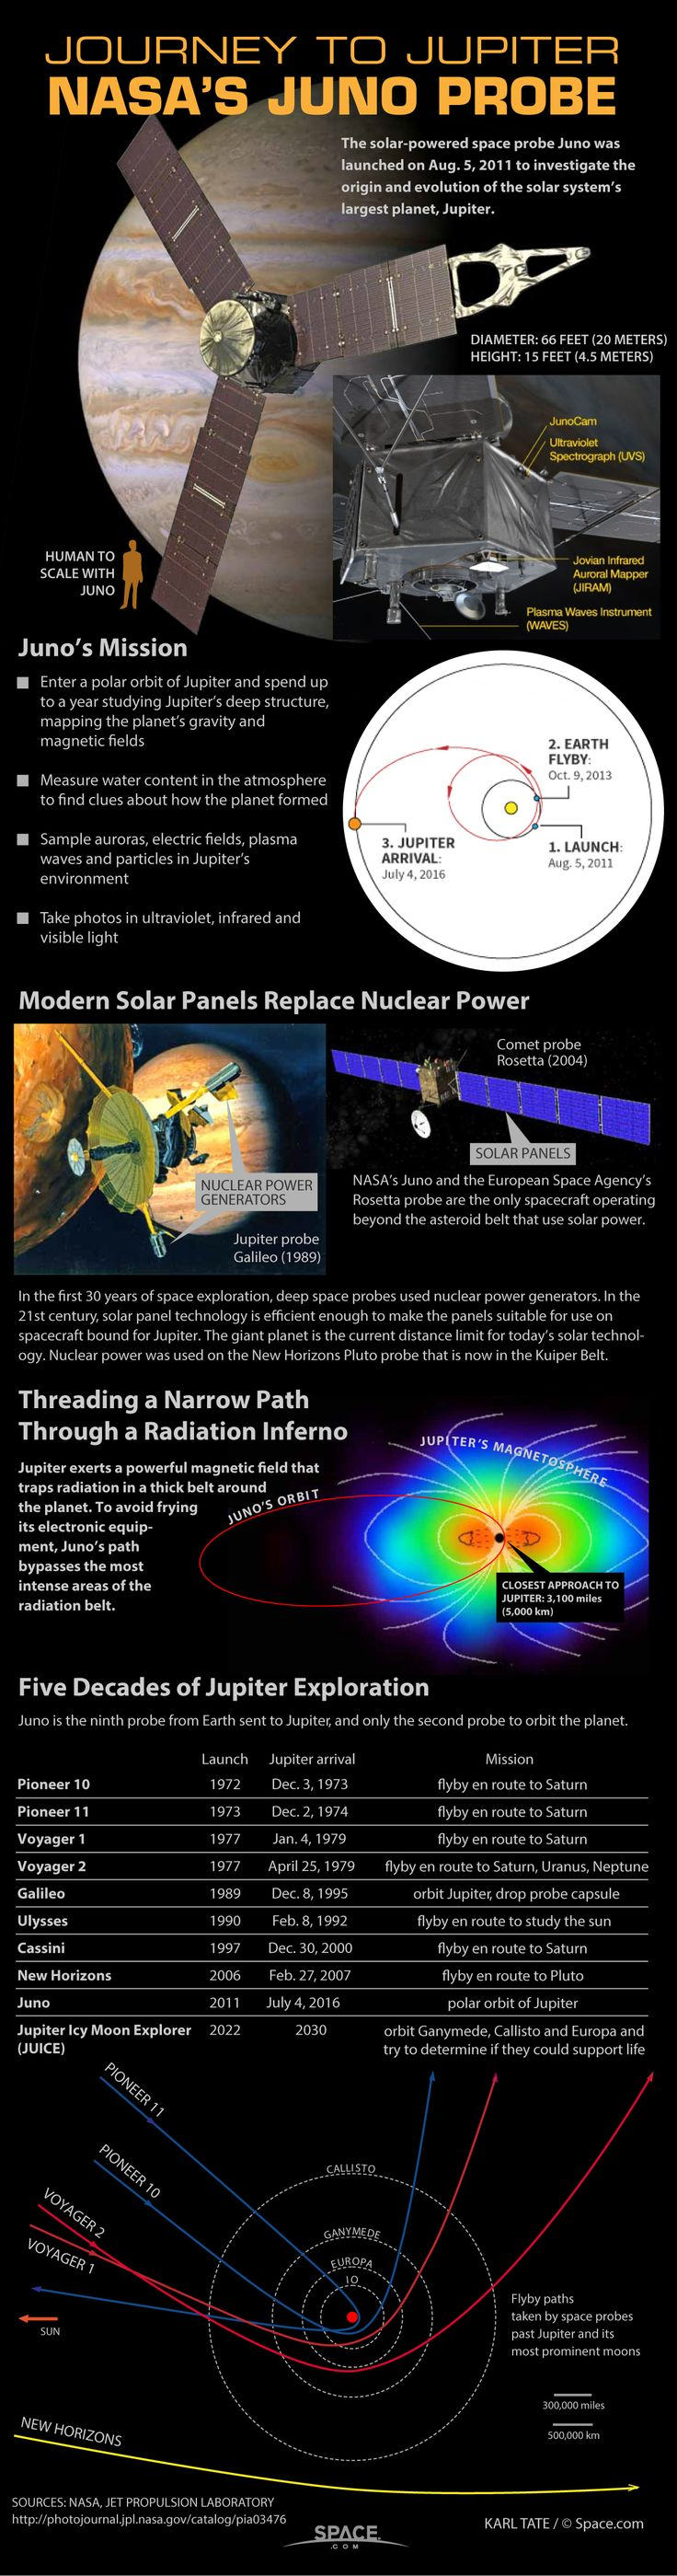 See how NASA's Juno spacecraft will explore Jupiter like never before in this SPACE.com infographic.